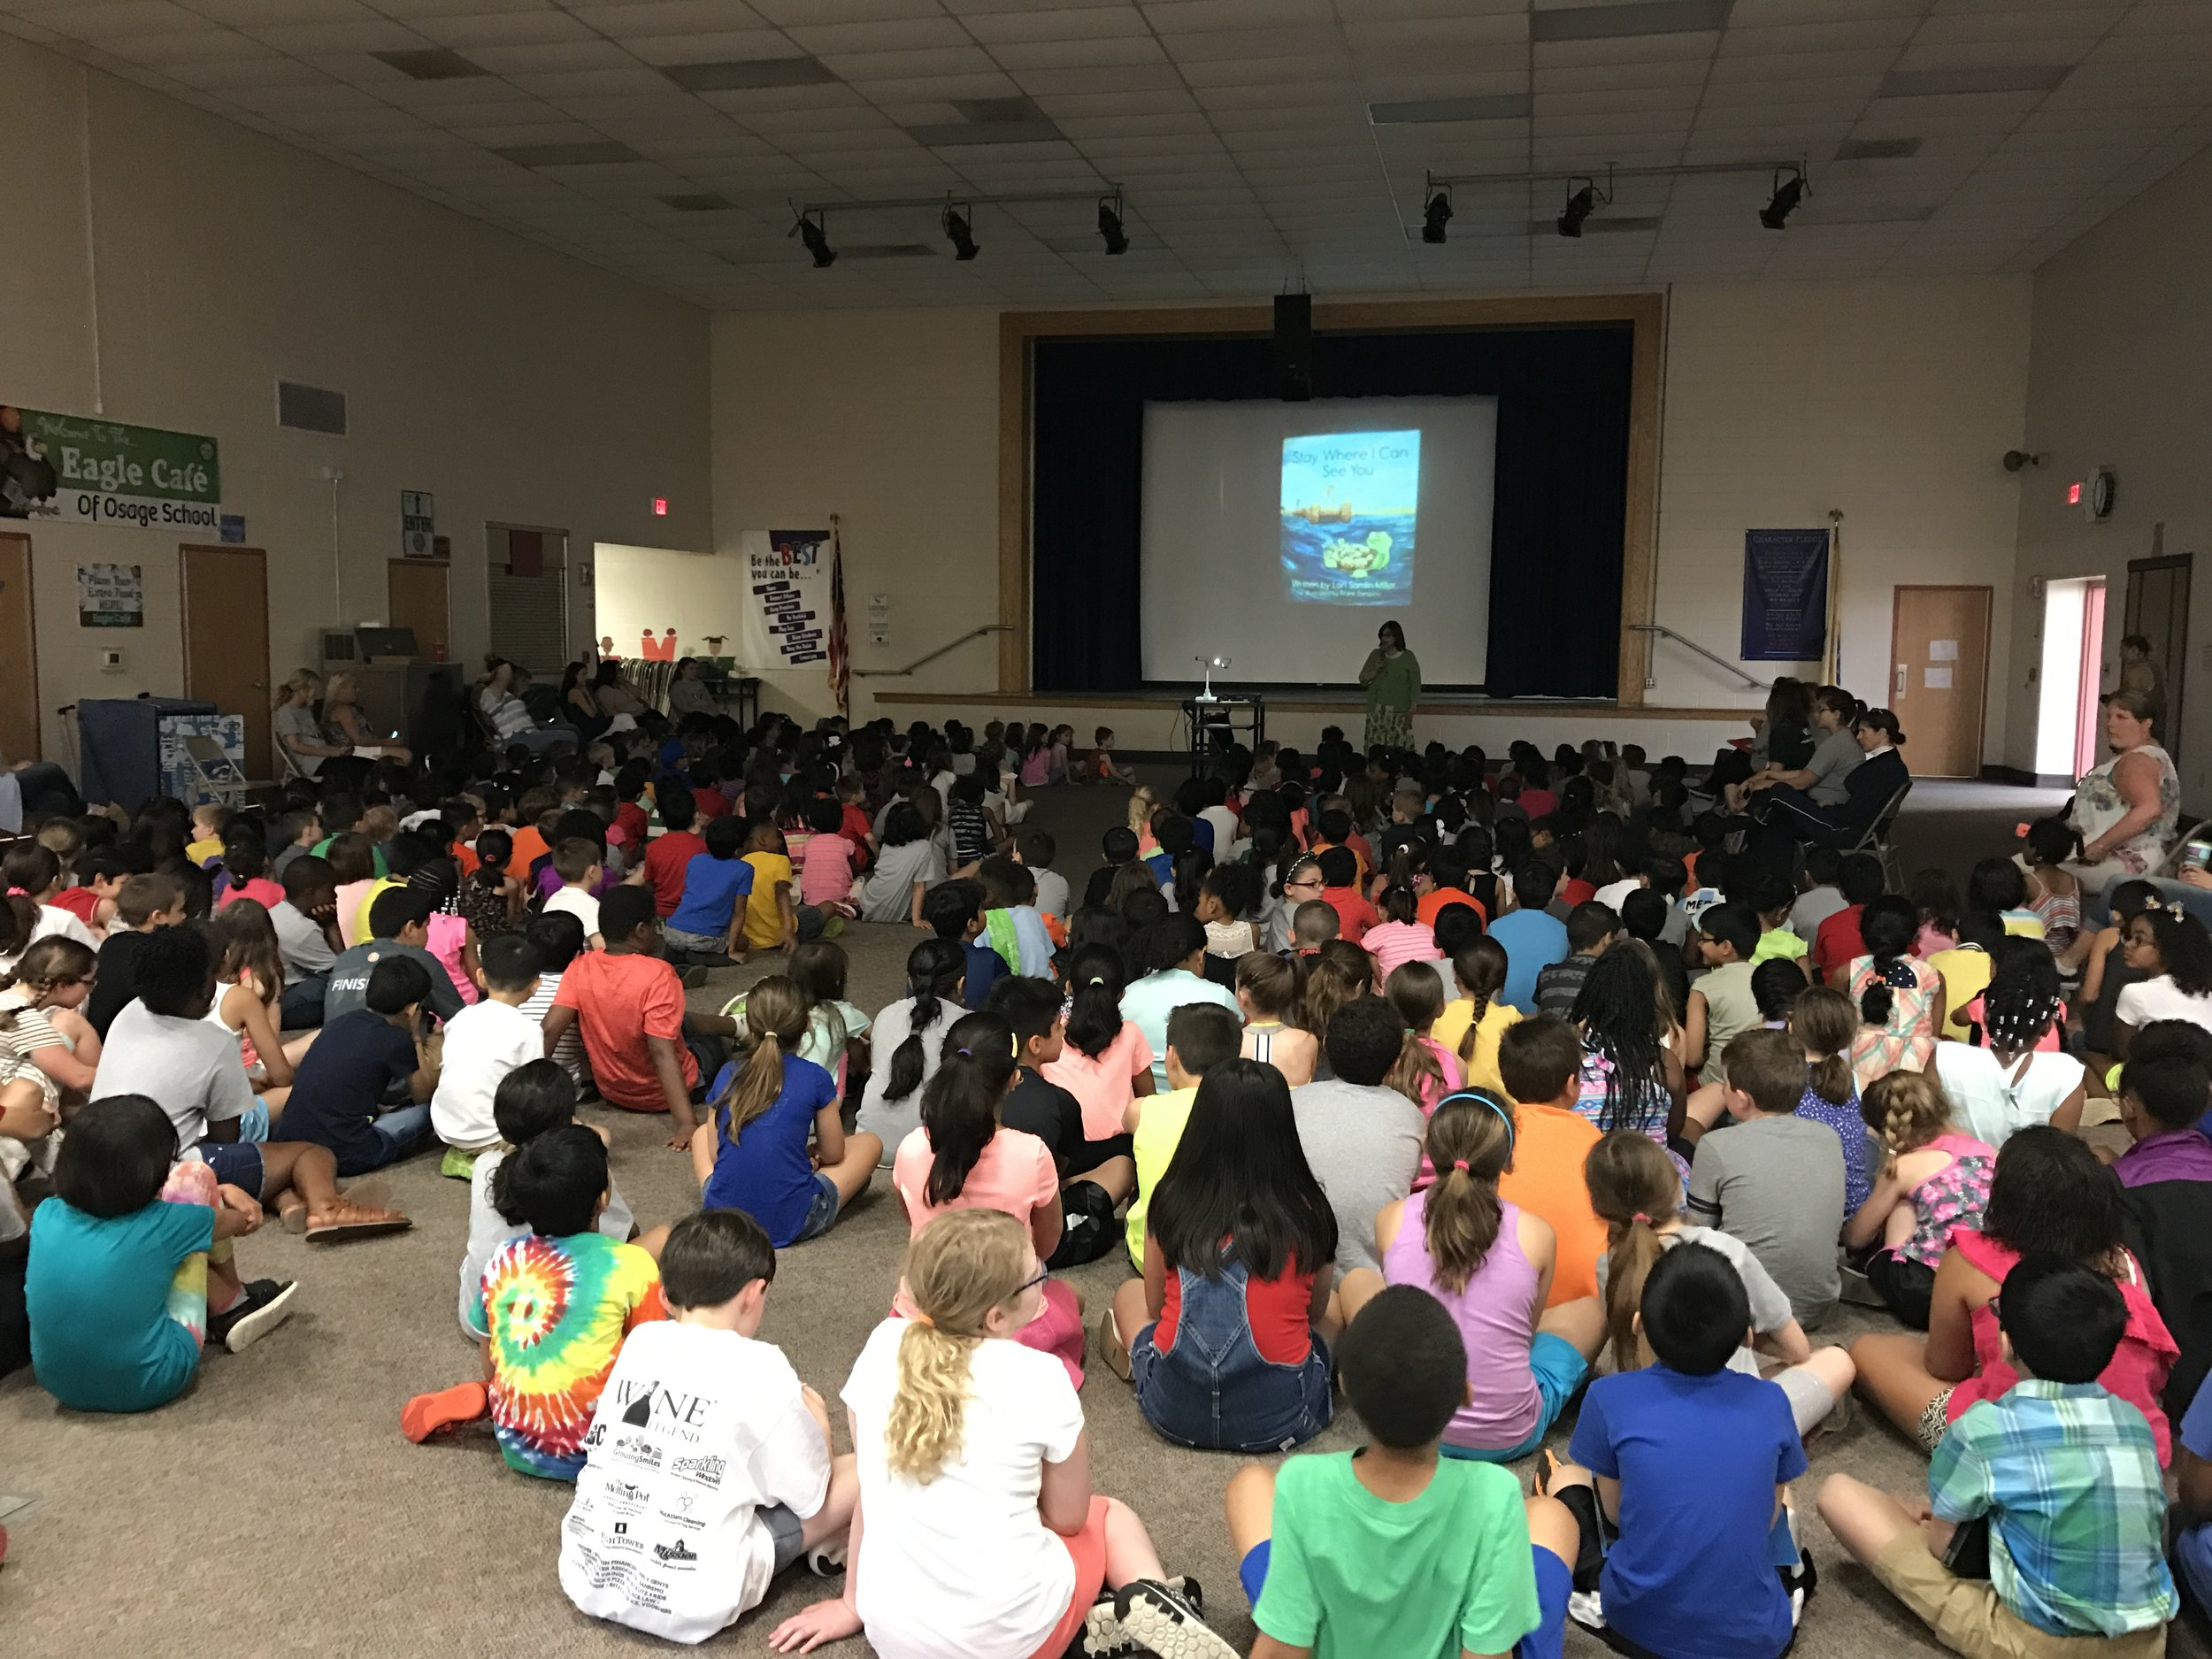 Osage Reading Program     On May 19th, 2017 I spent a wonderful day at Osage Elementary School. After sharing my book with the Kindgarten-3rd Graders, we had a chance to discuss the writing process. The students are excited and inspired writers with many interesting questions.